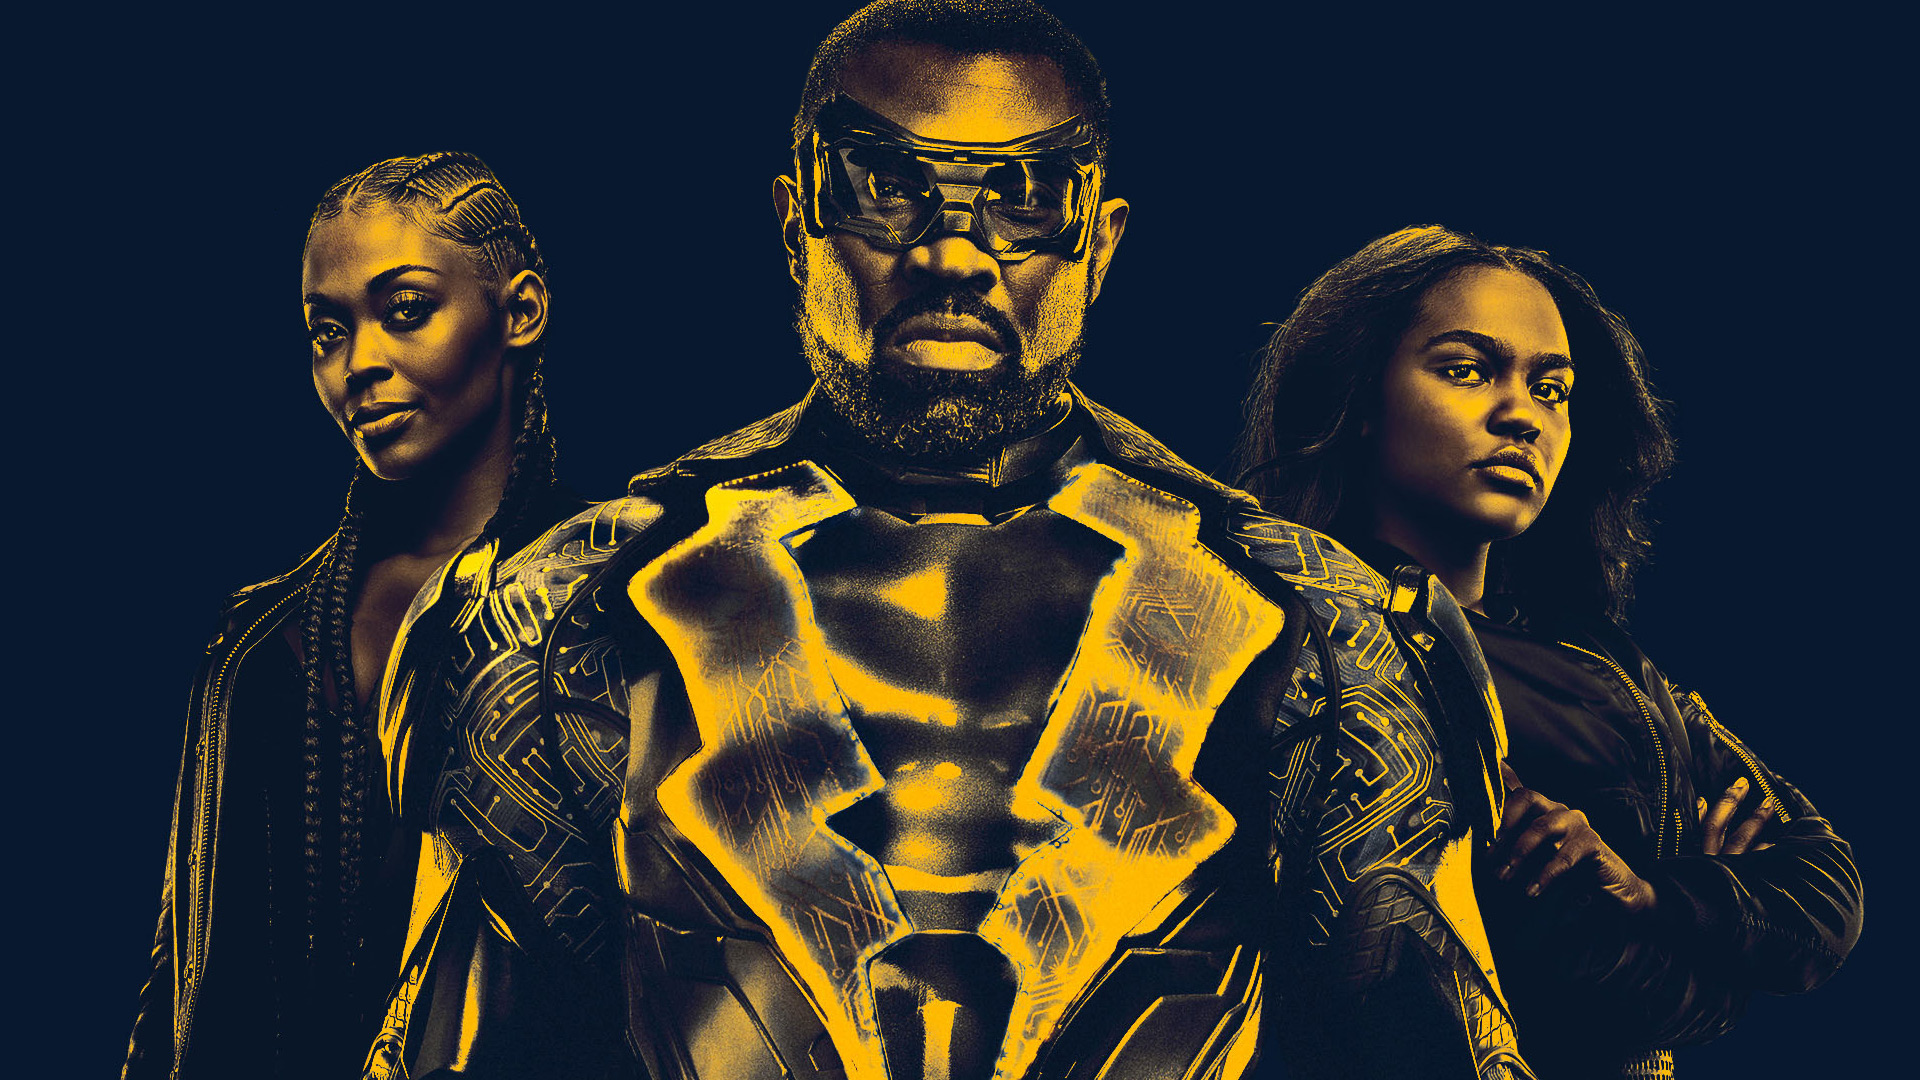 Black Lightning 2018 TV Series33647792 - Black Lightning 2018 TV Series - Sweety, Series, Lightning, Black, 2018